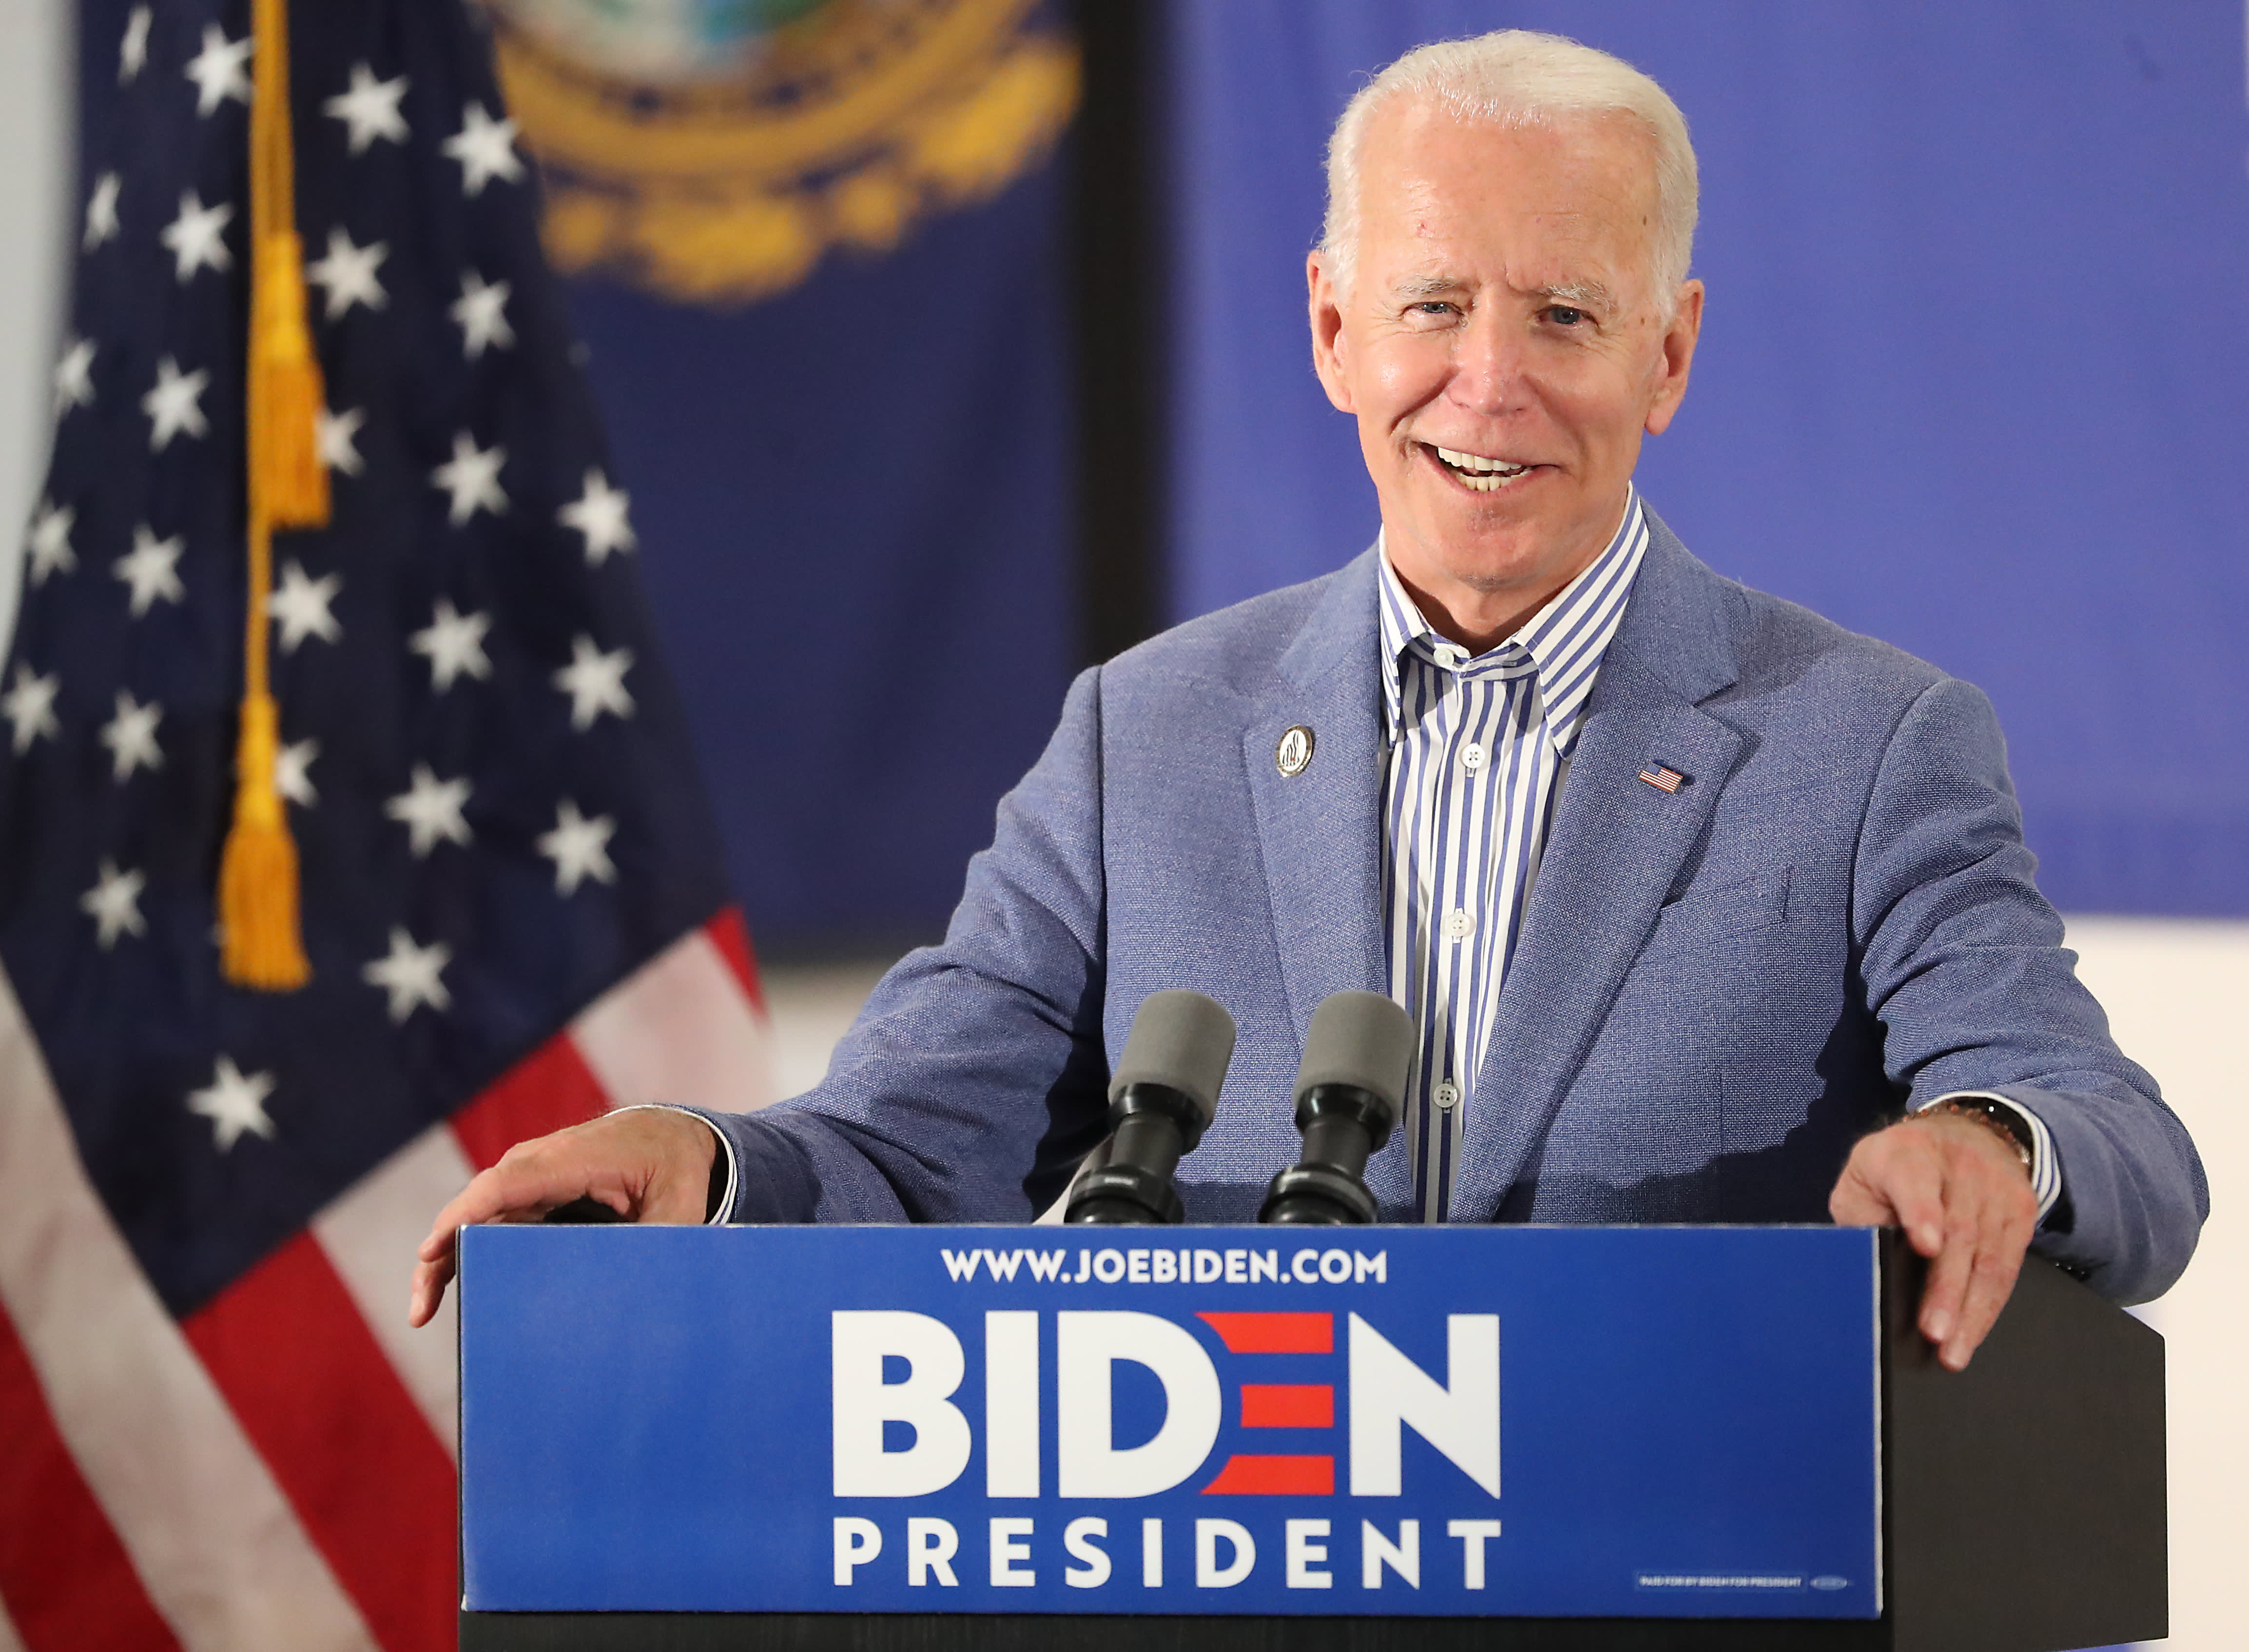 Millionaires say they are more likely to vote for Joe Biden over Donald Trump in 2020 elections